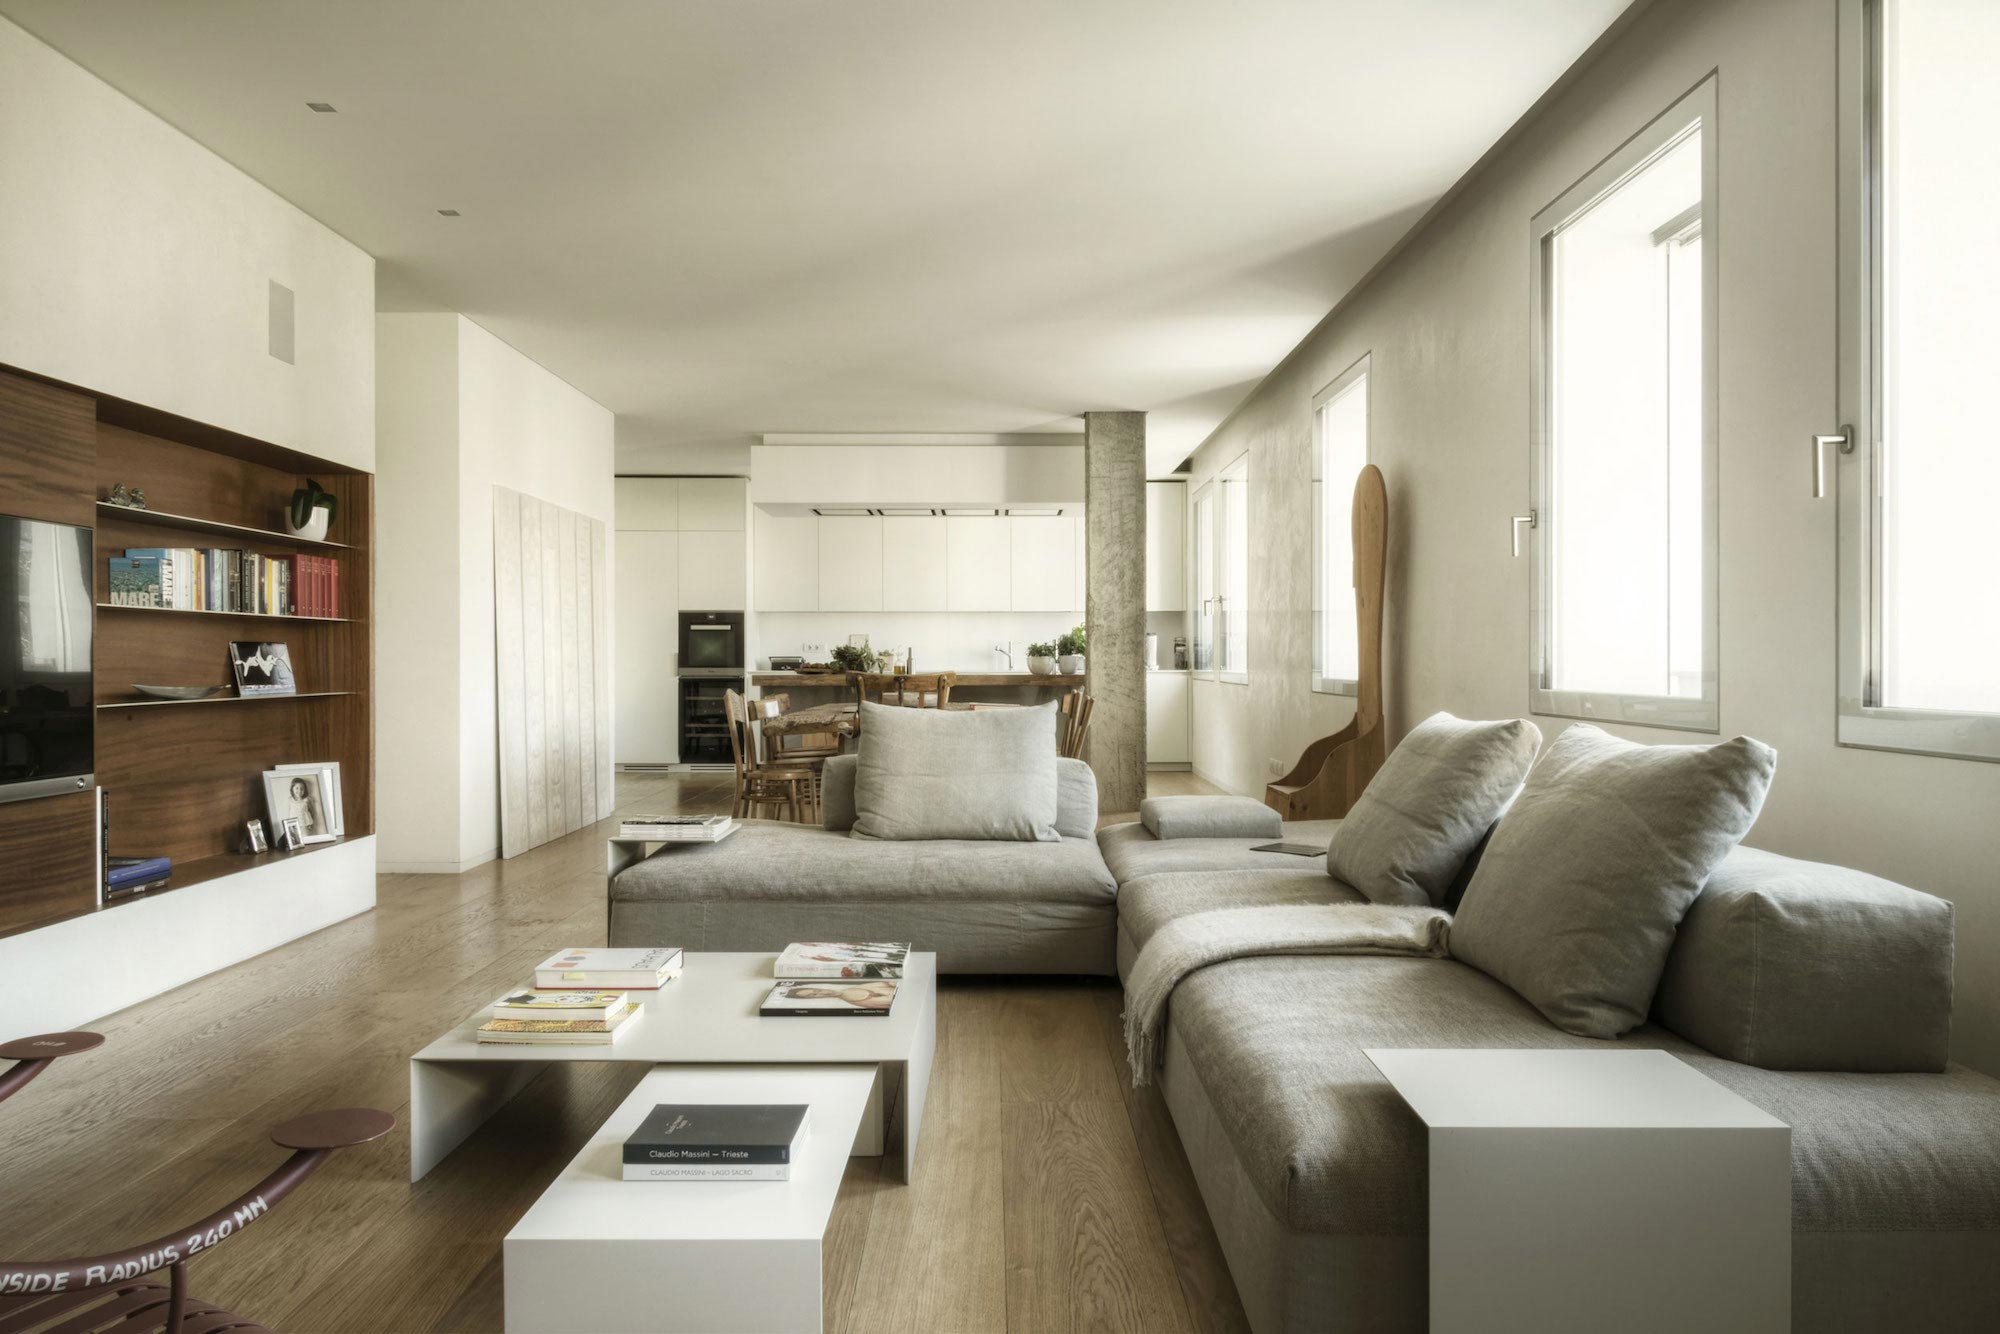 Rg rm residence by gobbo architetti caandesign for Iblaresort design boutique hotel ragusa rg